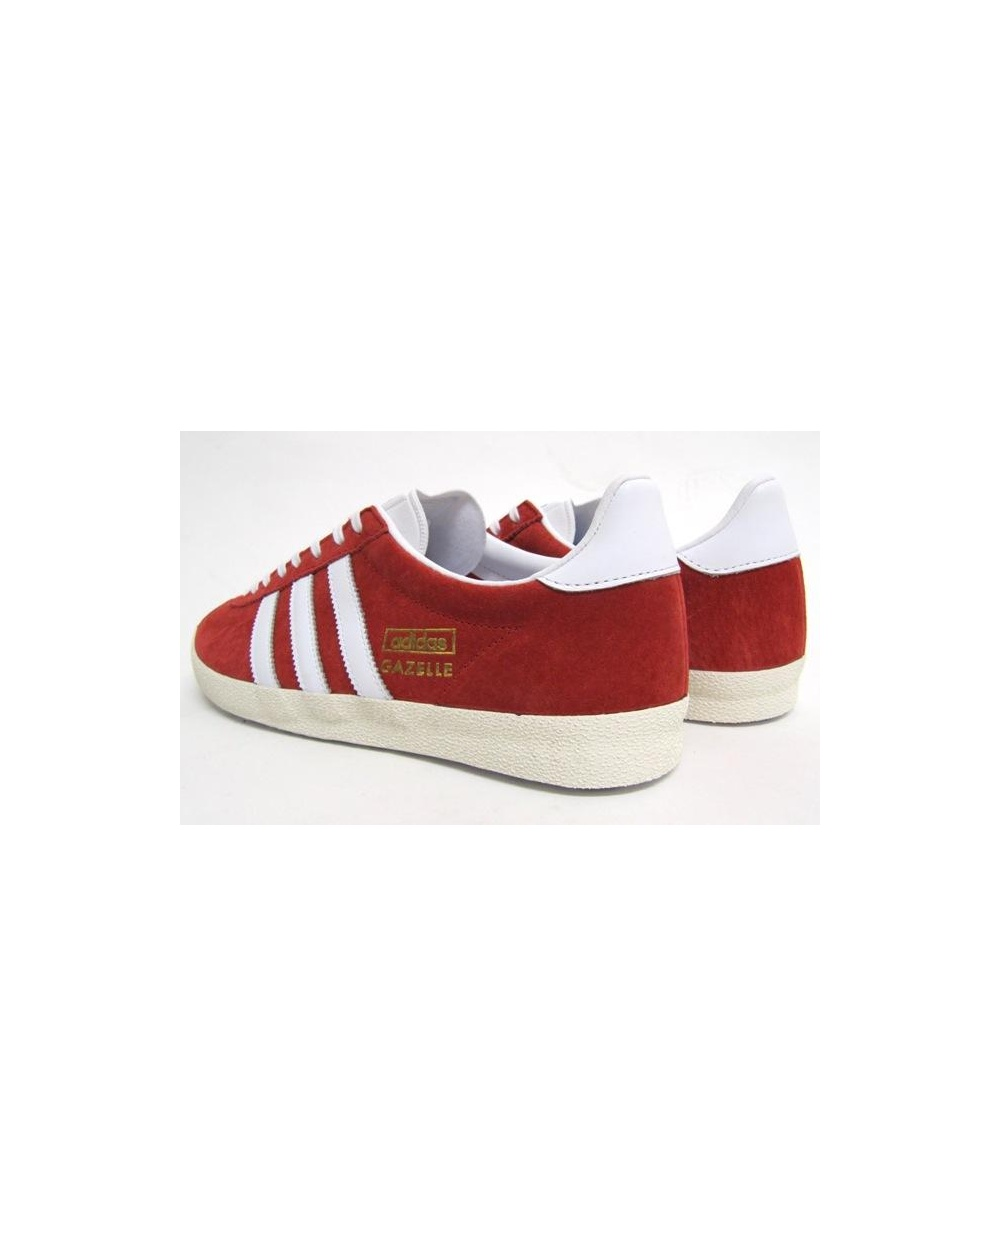 Mens Adidas Gazelle Og Trainers Red